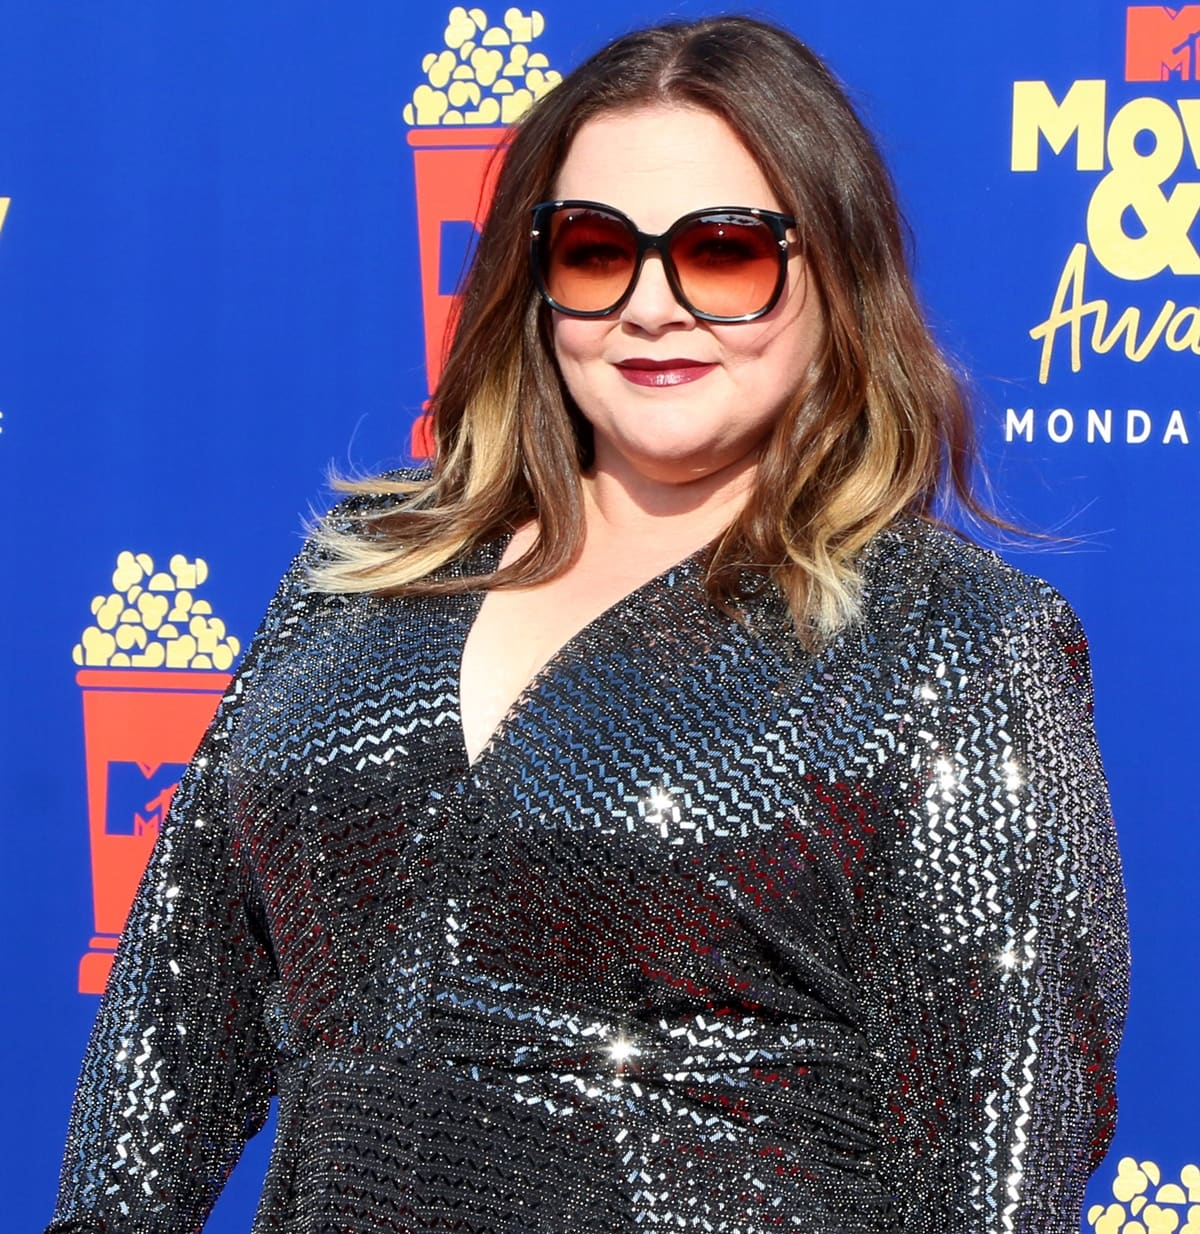 Melissa McCarthy rocks sunglasses with Dena Kemp jewelry and a sequined jumpsuit by Talbot Runhof